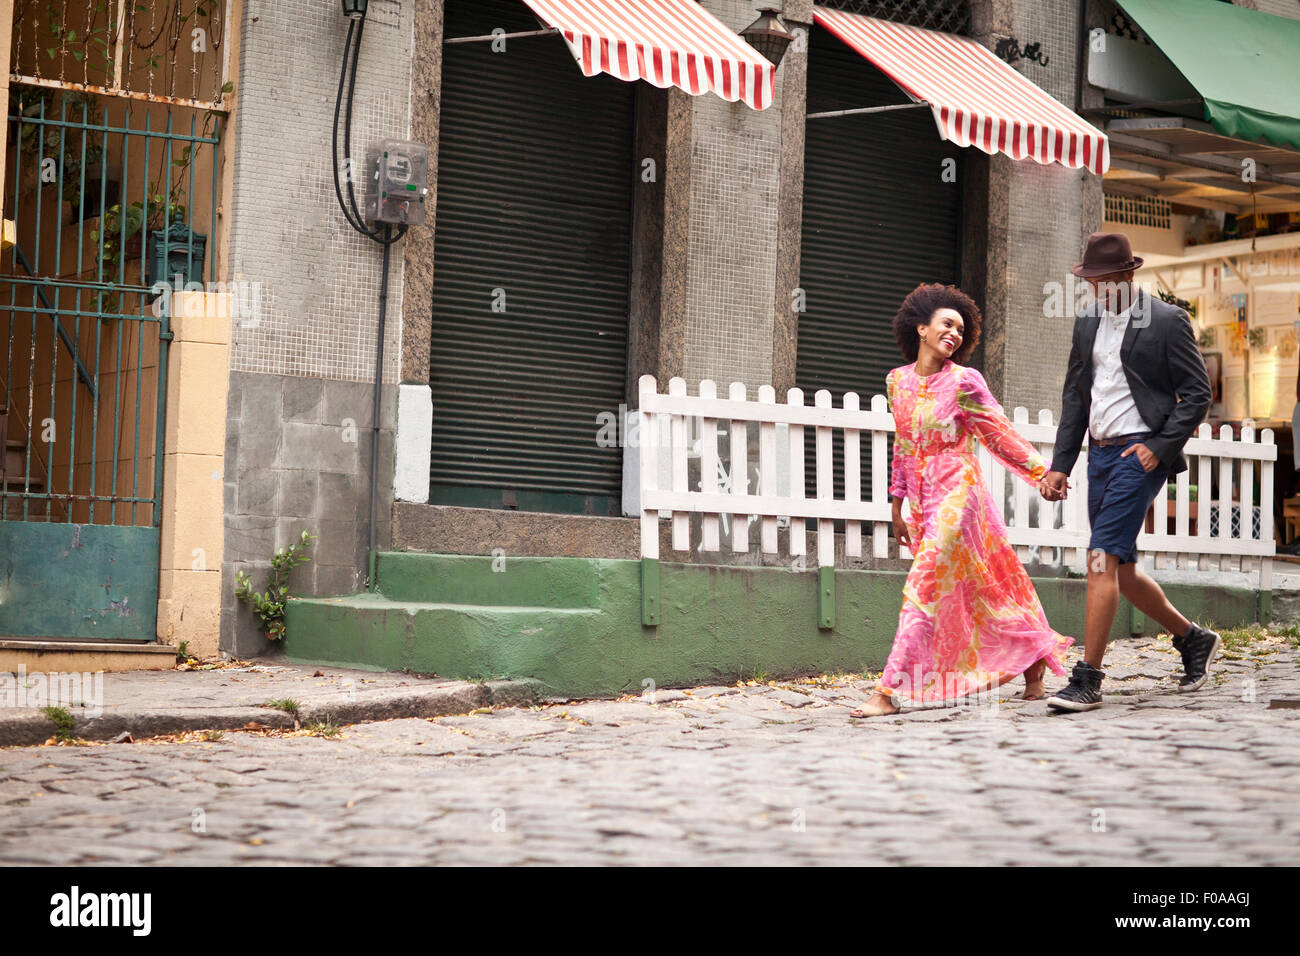 Couple walking along cobbled street, hand in hand - Stock Image